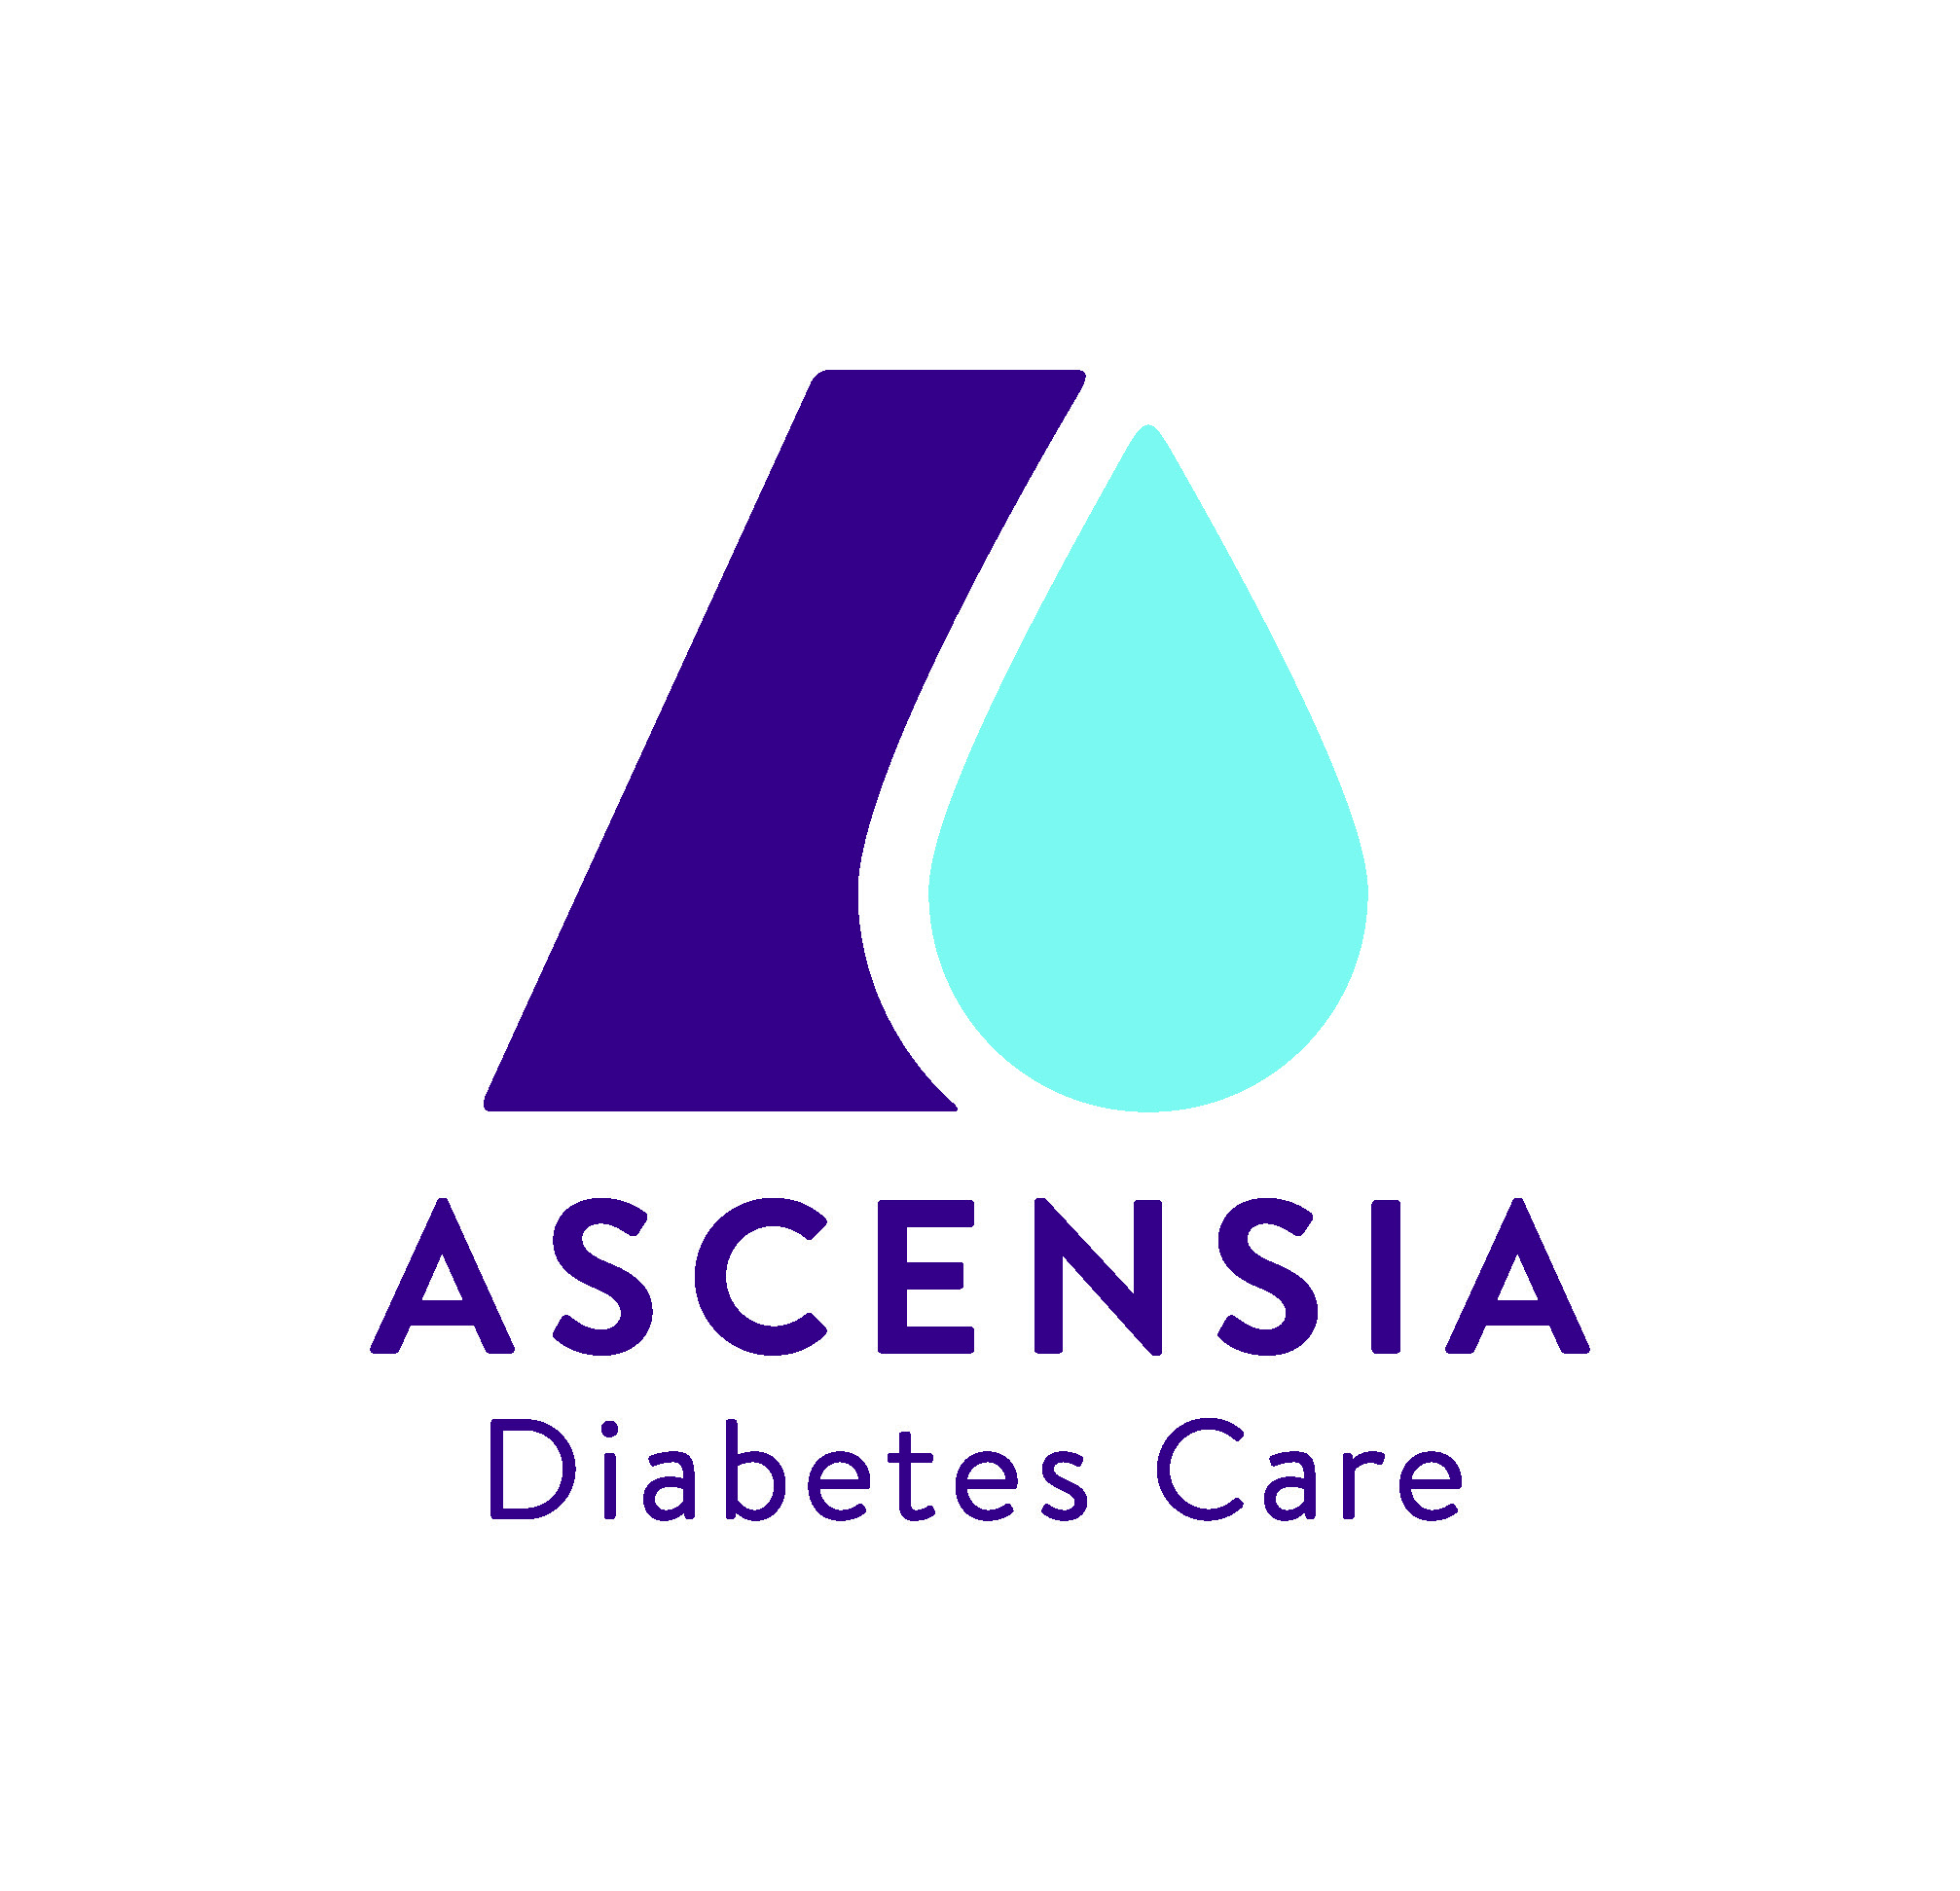 Ascensia Diabetes Care Australia